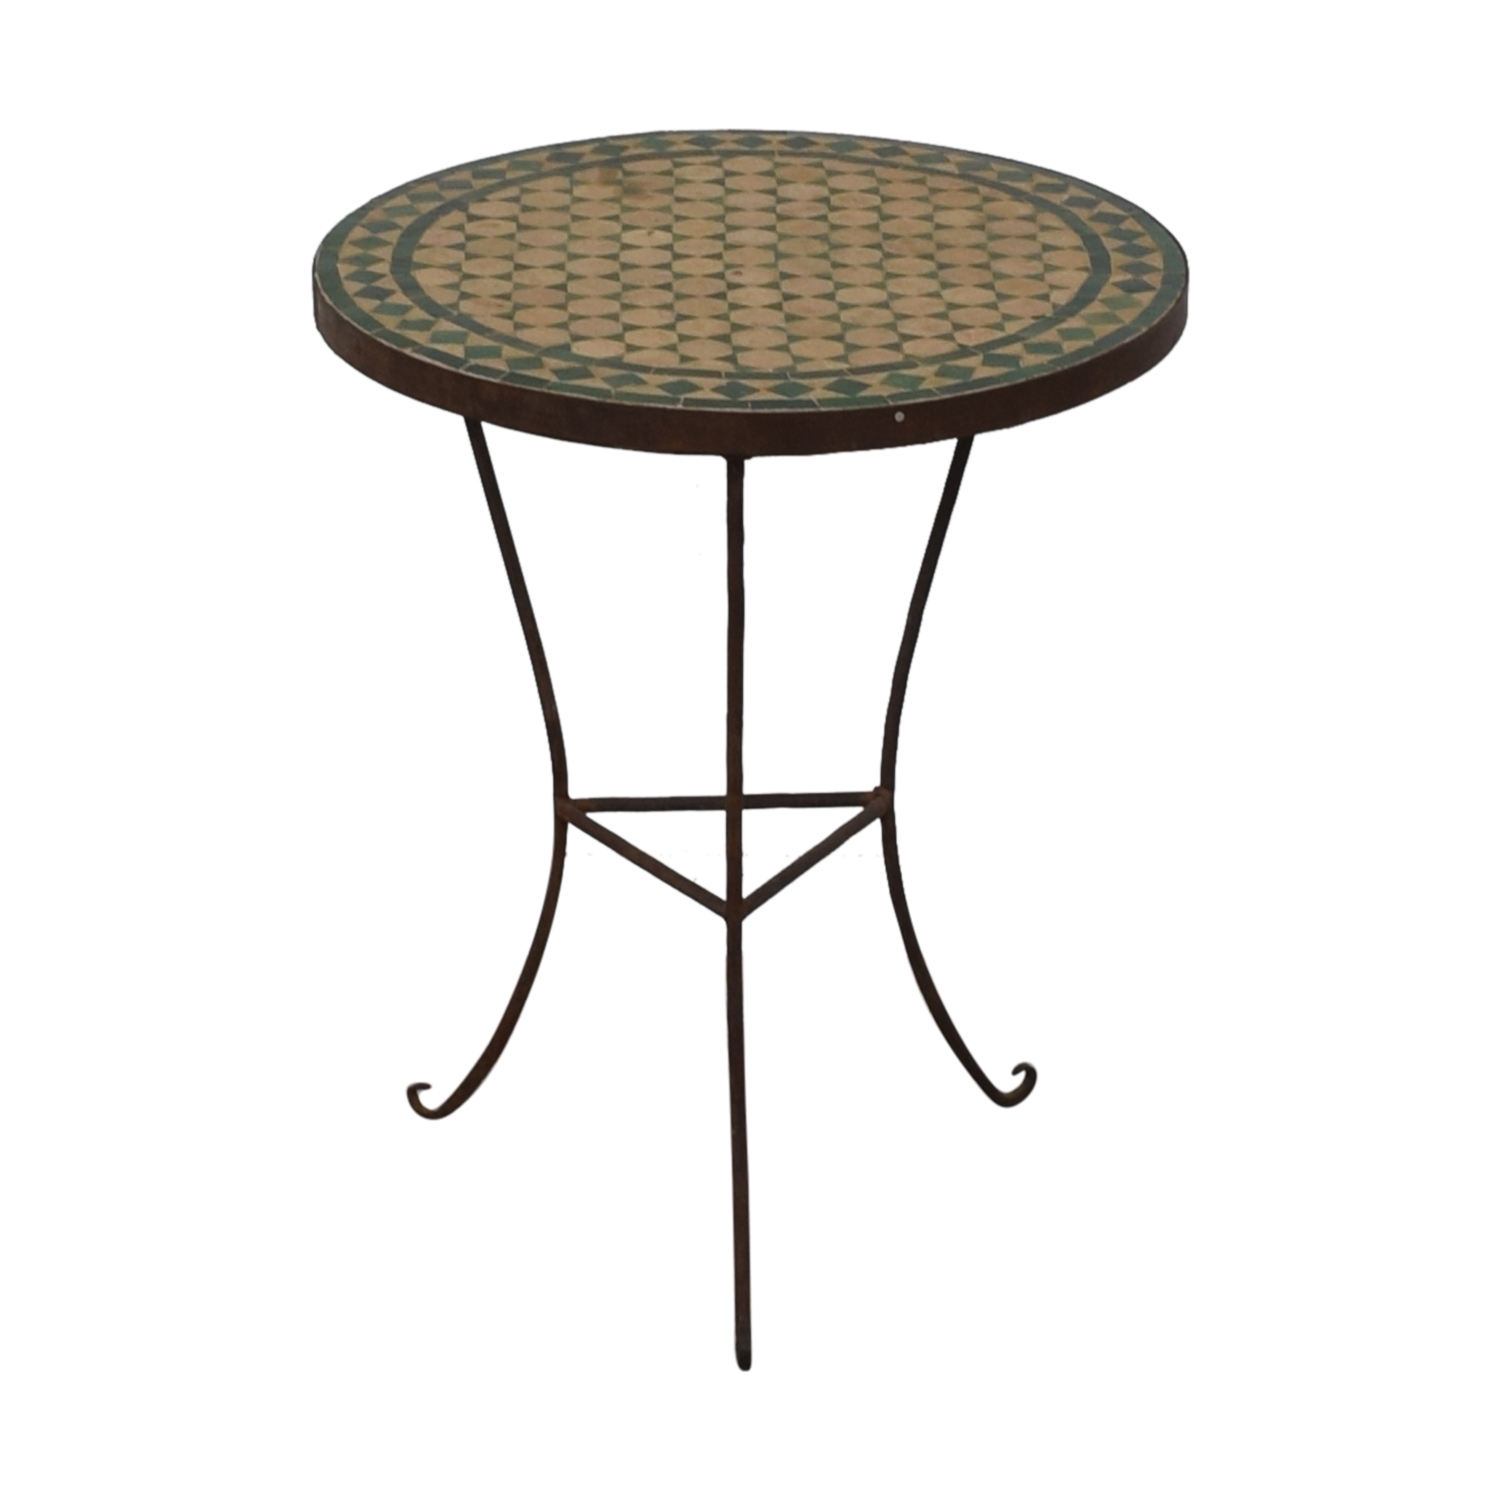 Moroccan Tile Table second hand